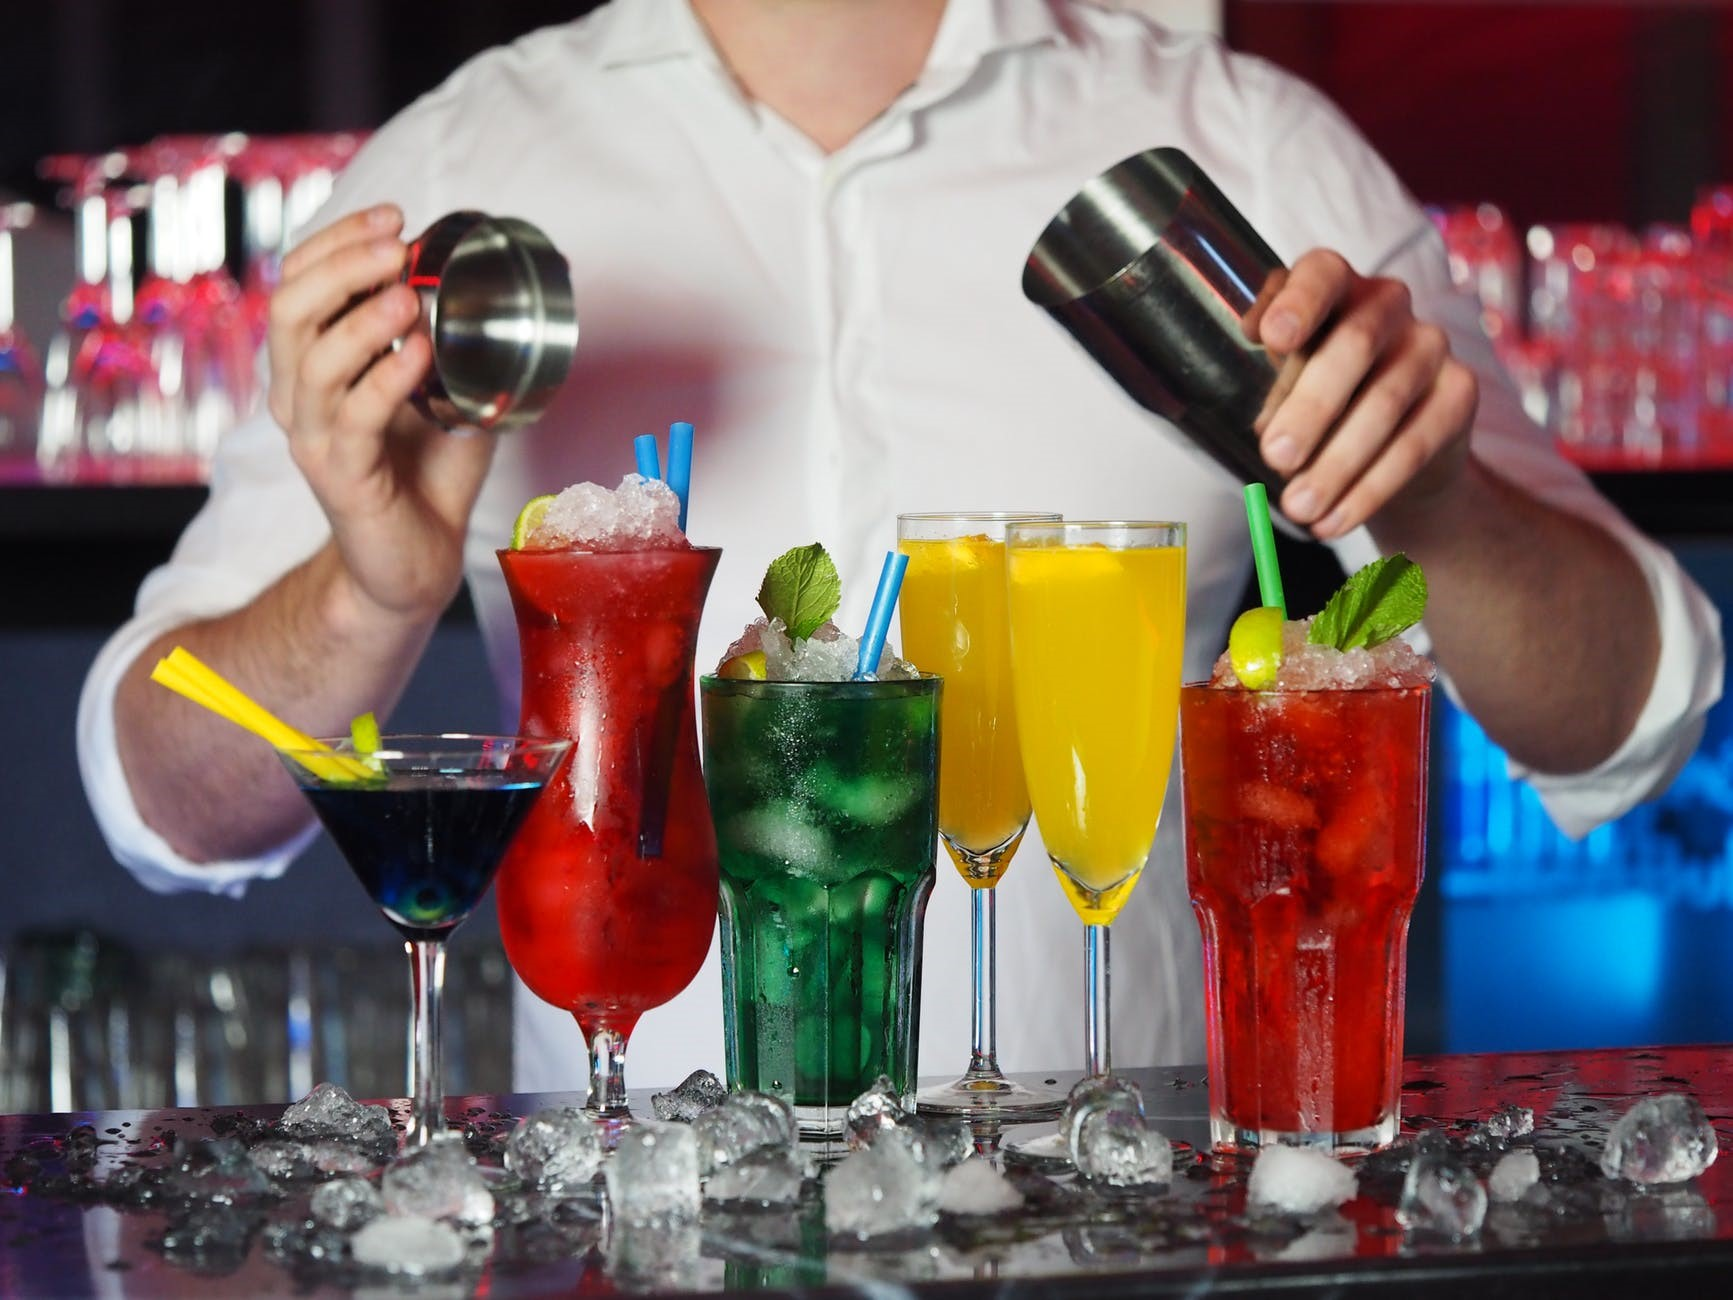 Get Alexa's Assistance with Your Drink Mixology by SideChef-Bacardi Contribution